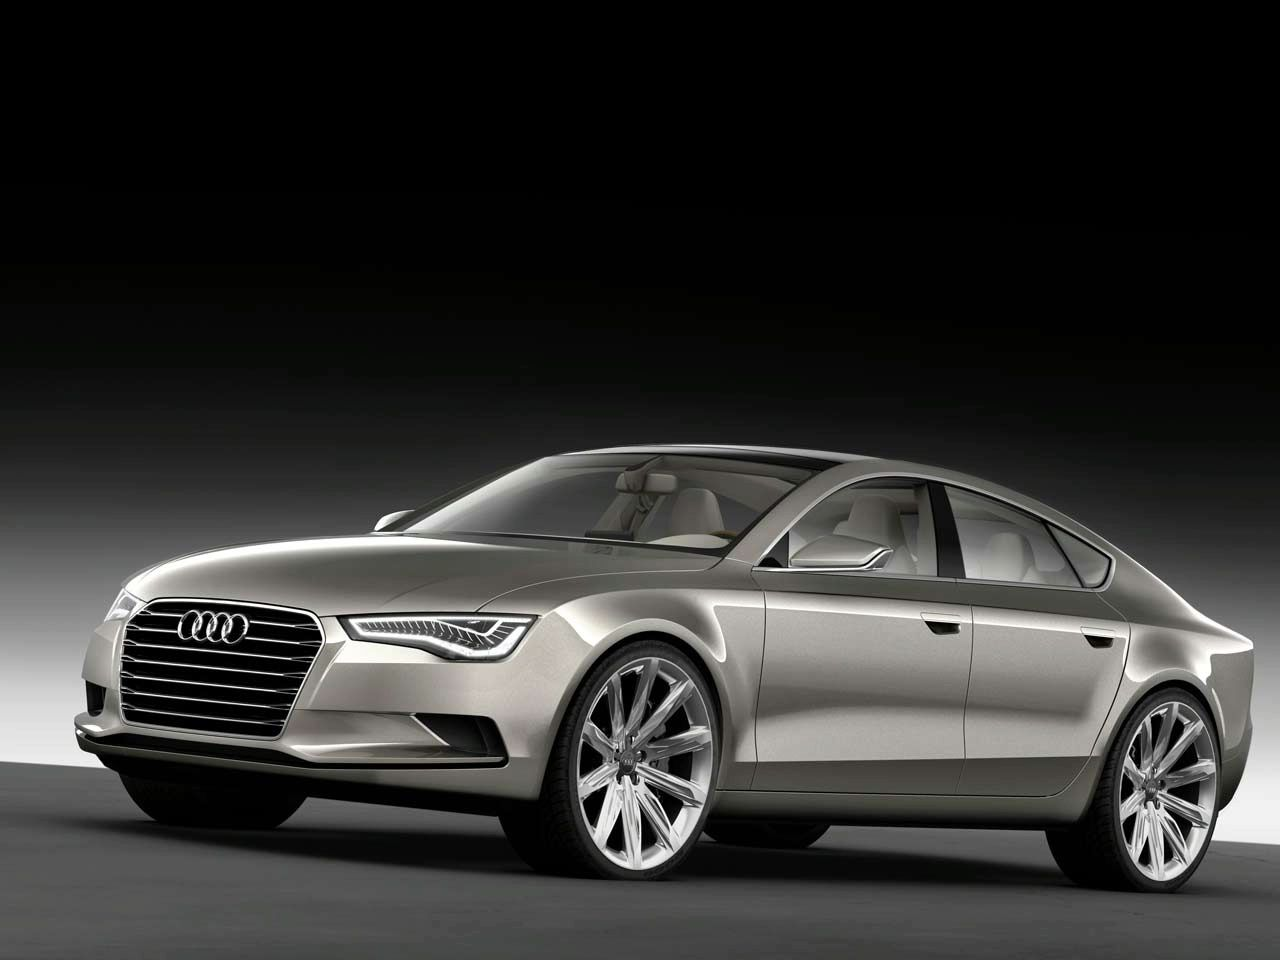 Bon Audi A7... OMGosh!!! This Is The Most Beautiful Car On